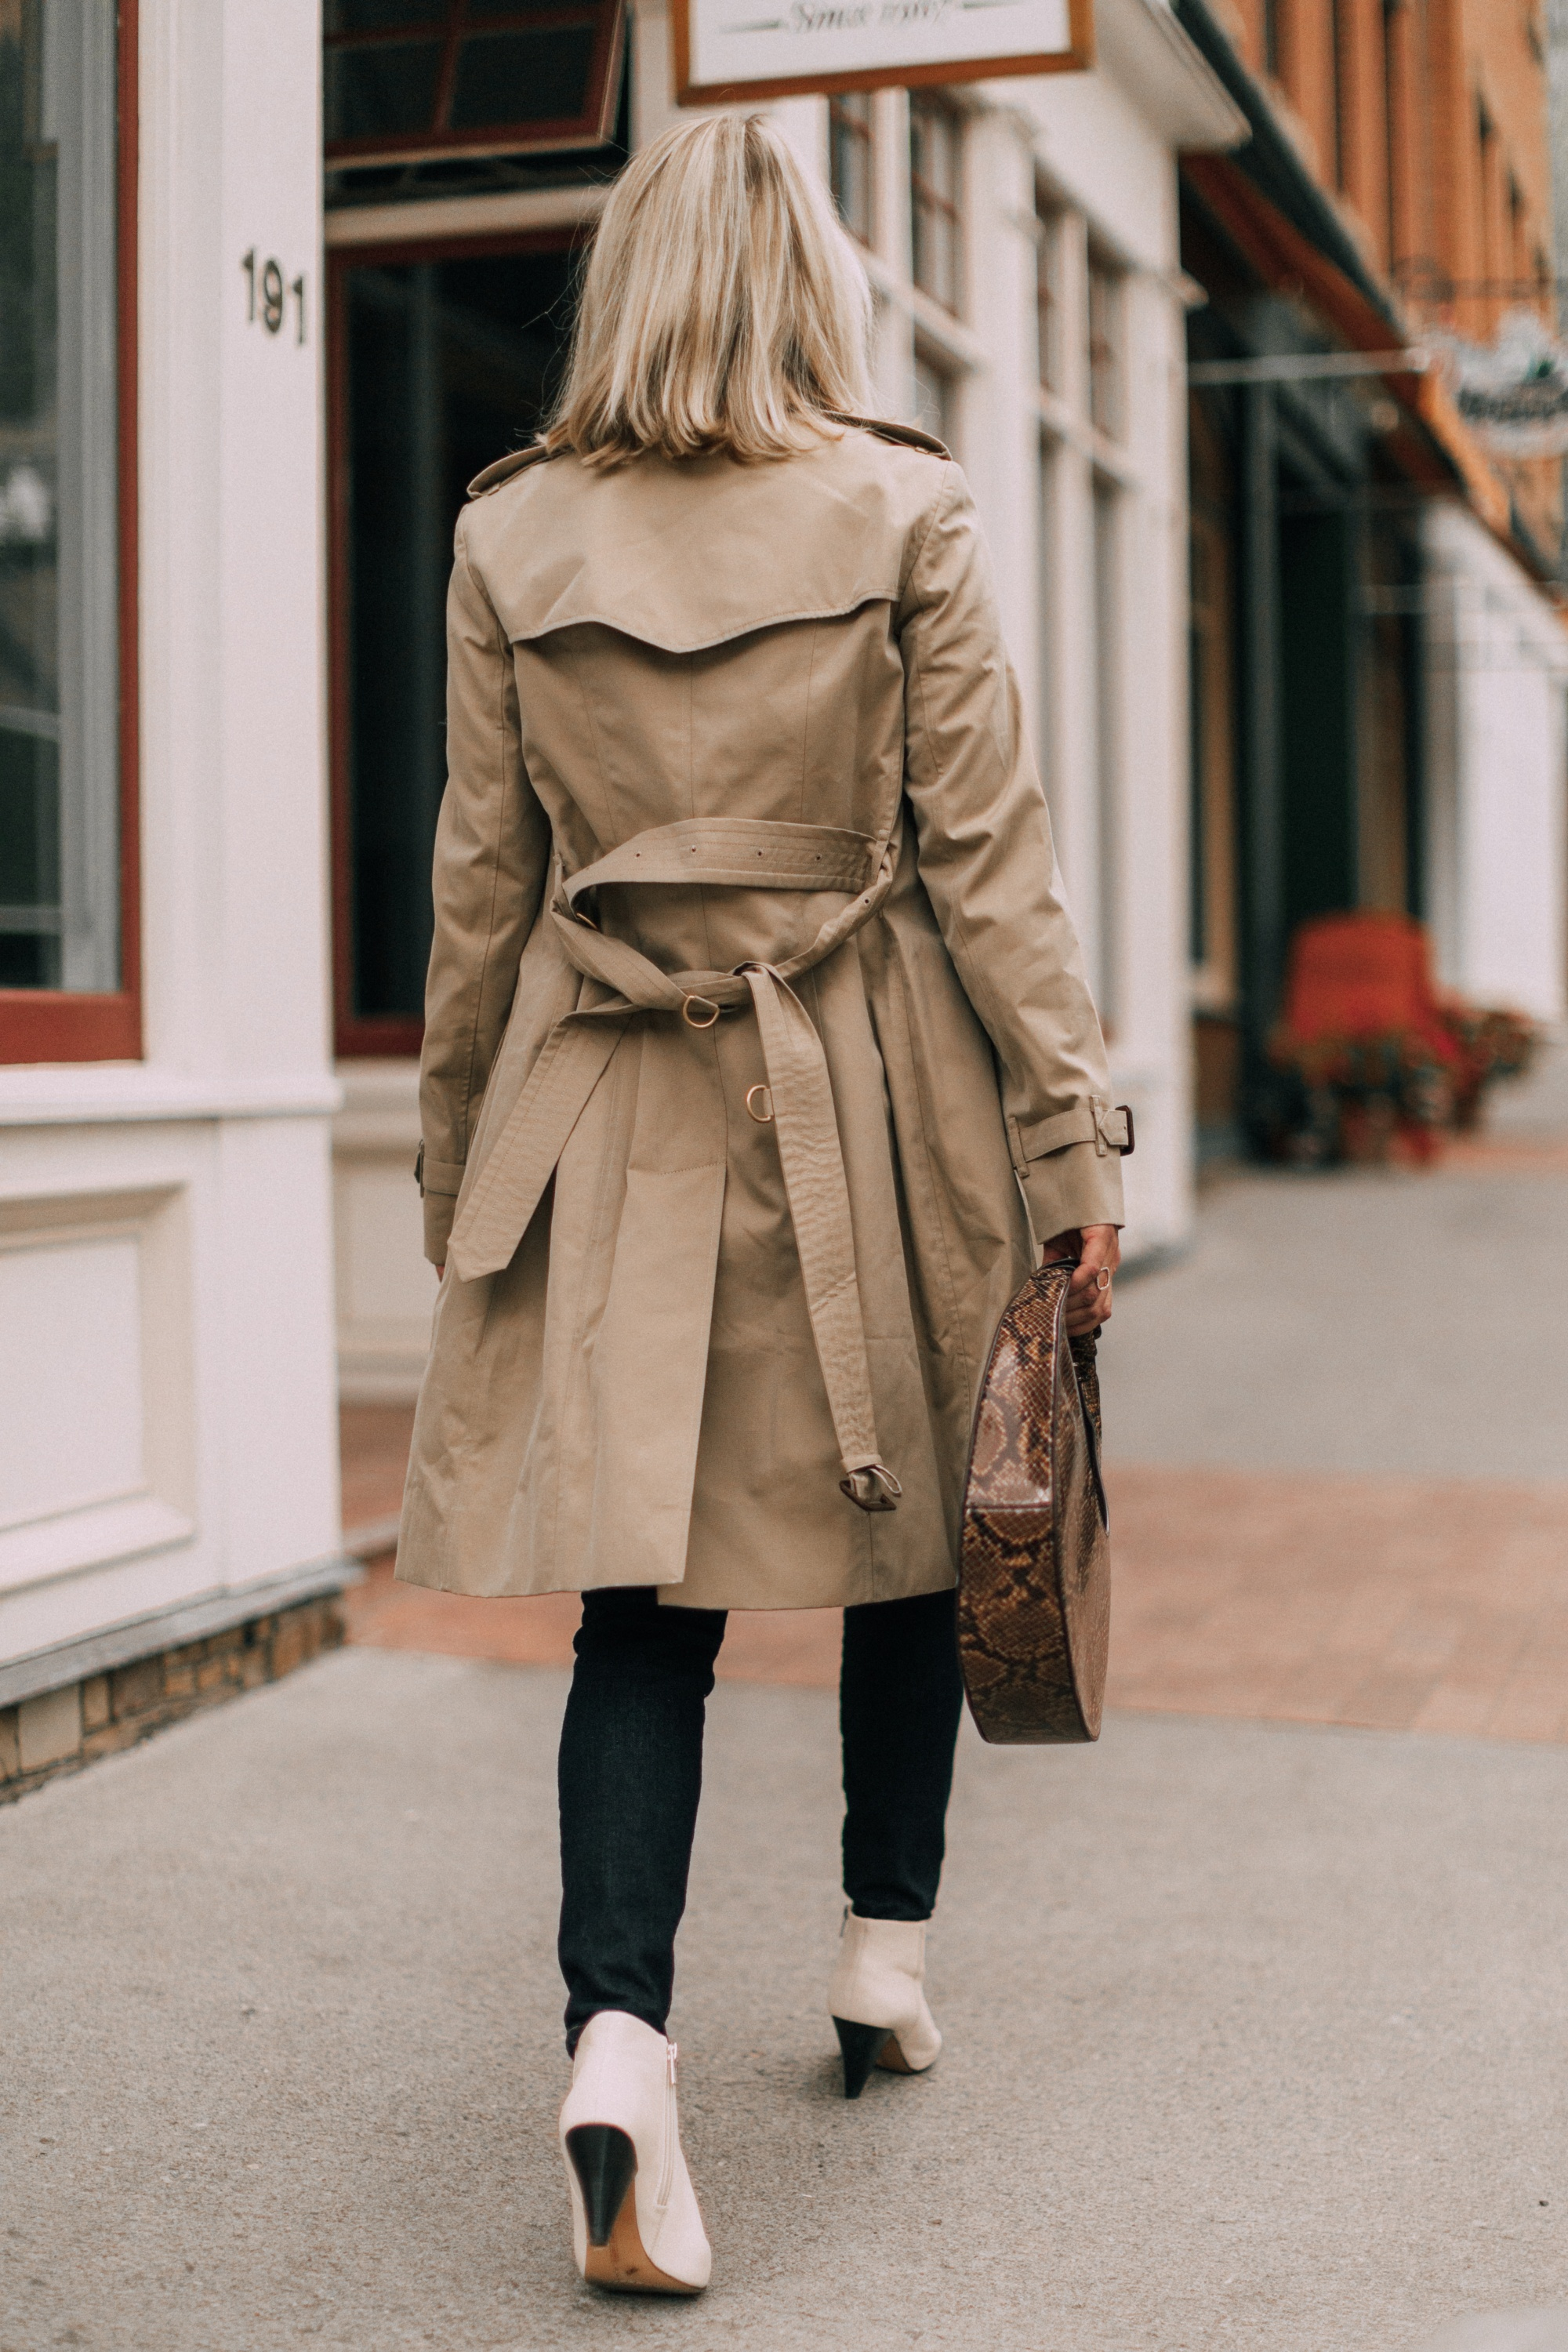 Burberry tan Keningston trench coat on on fashoin blogger Erin Busbee of Busbee Style in Telluride, Colorado